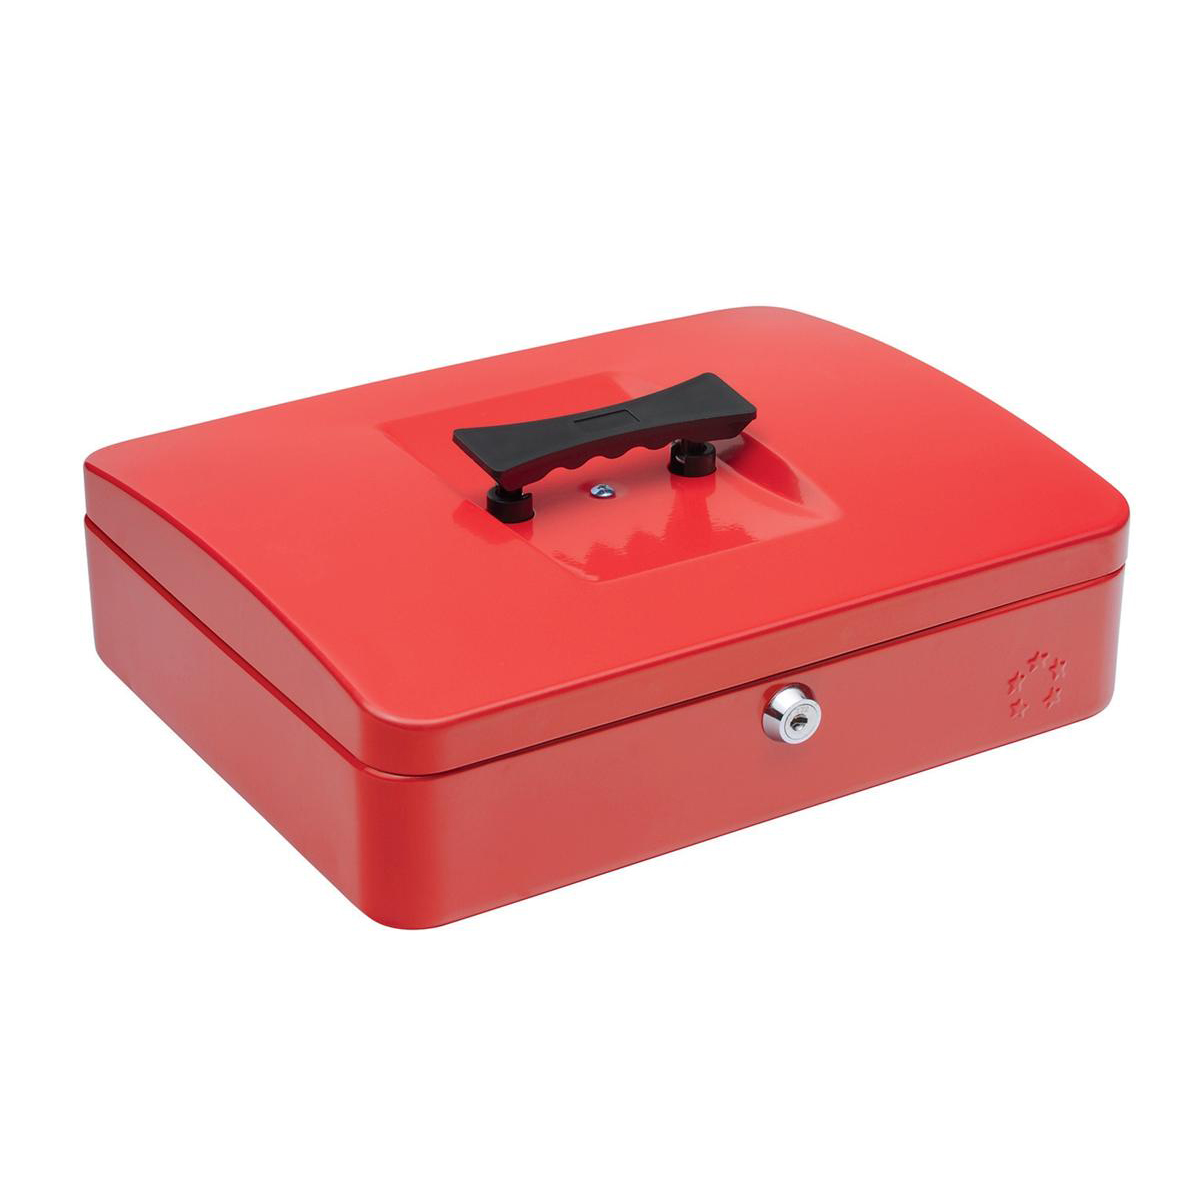 Cash or ticket boxes 5 Star Facilities Cash Box with 5-compartment Tray Steel Spring Lock 12 Inch W300xD240xH70mm Red